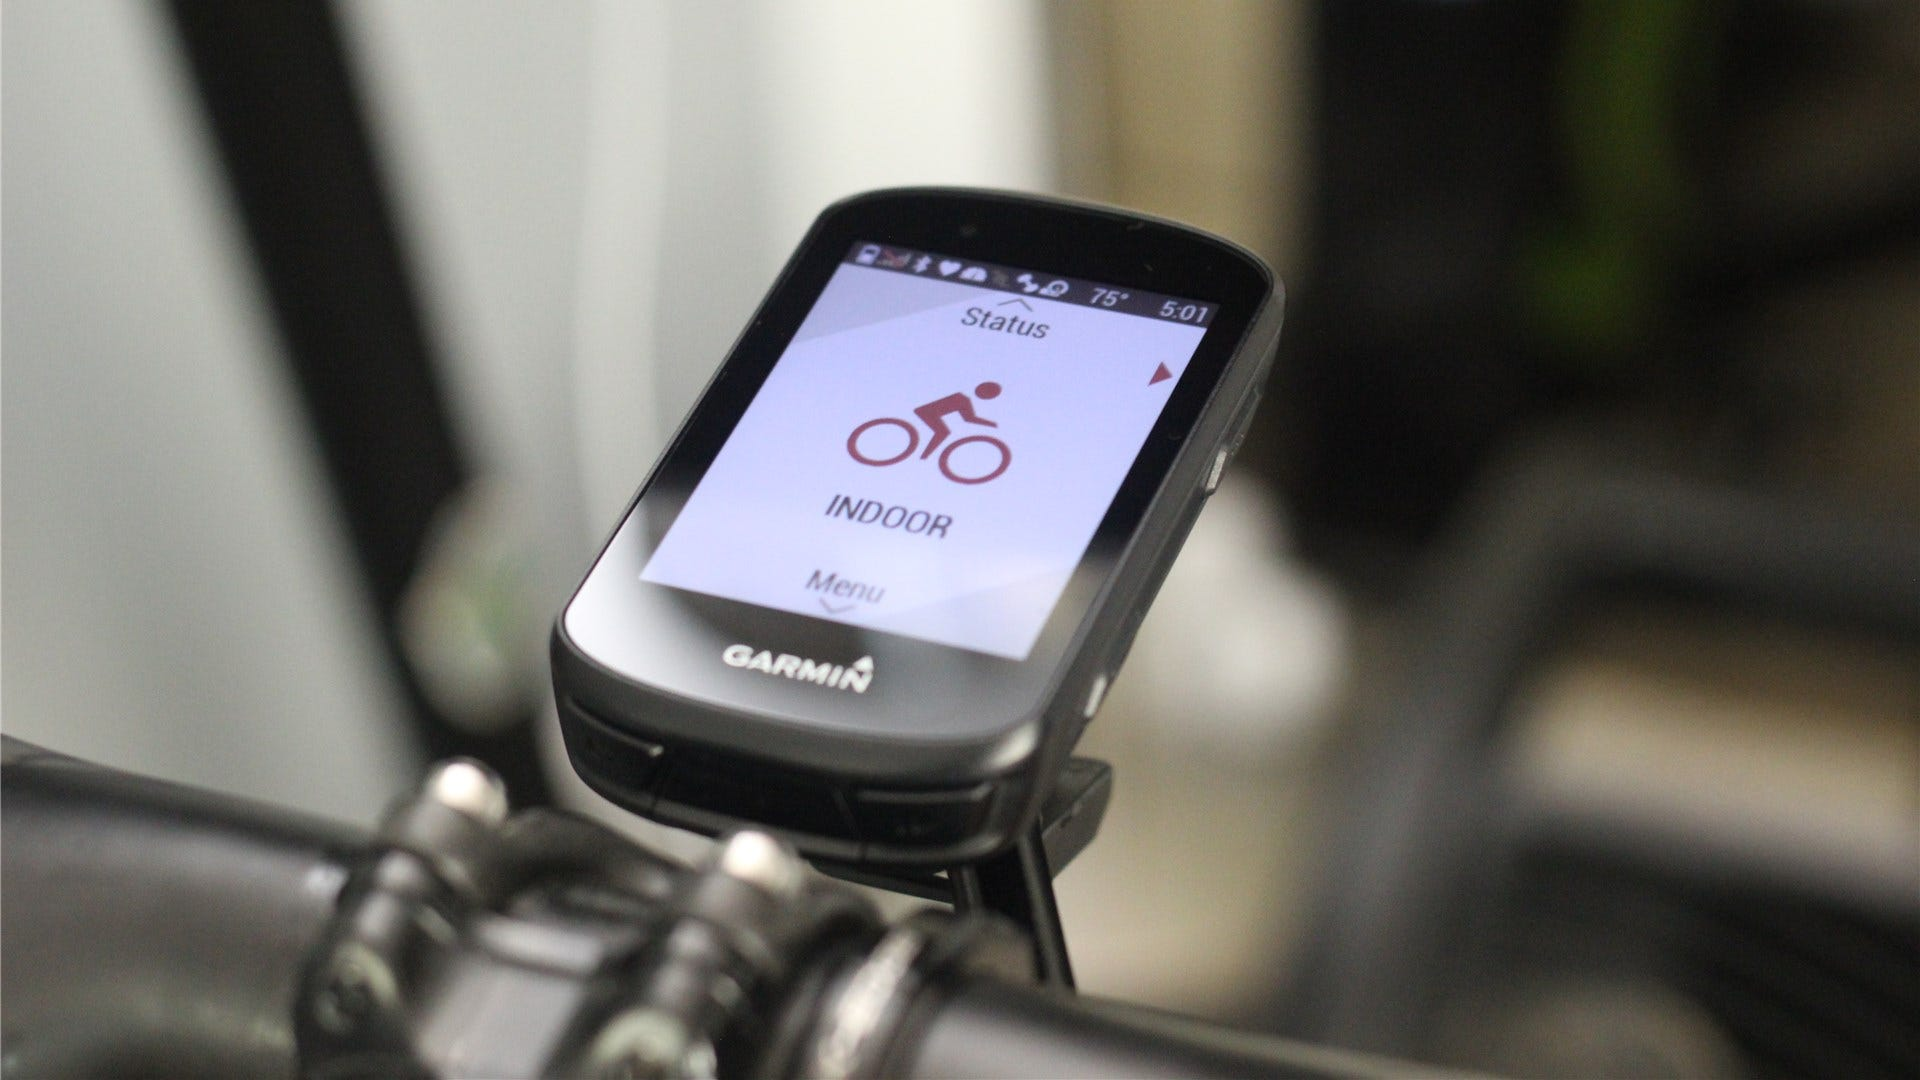 The Garmin Edge 530 on an out-front bike mount